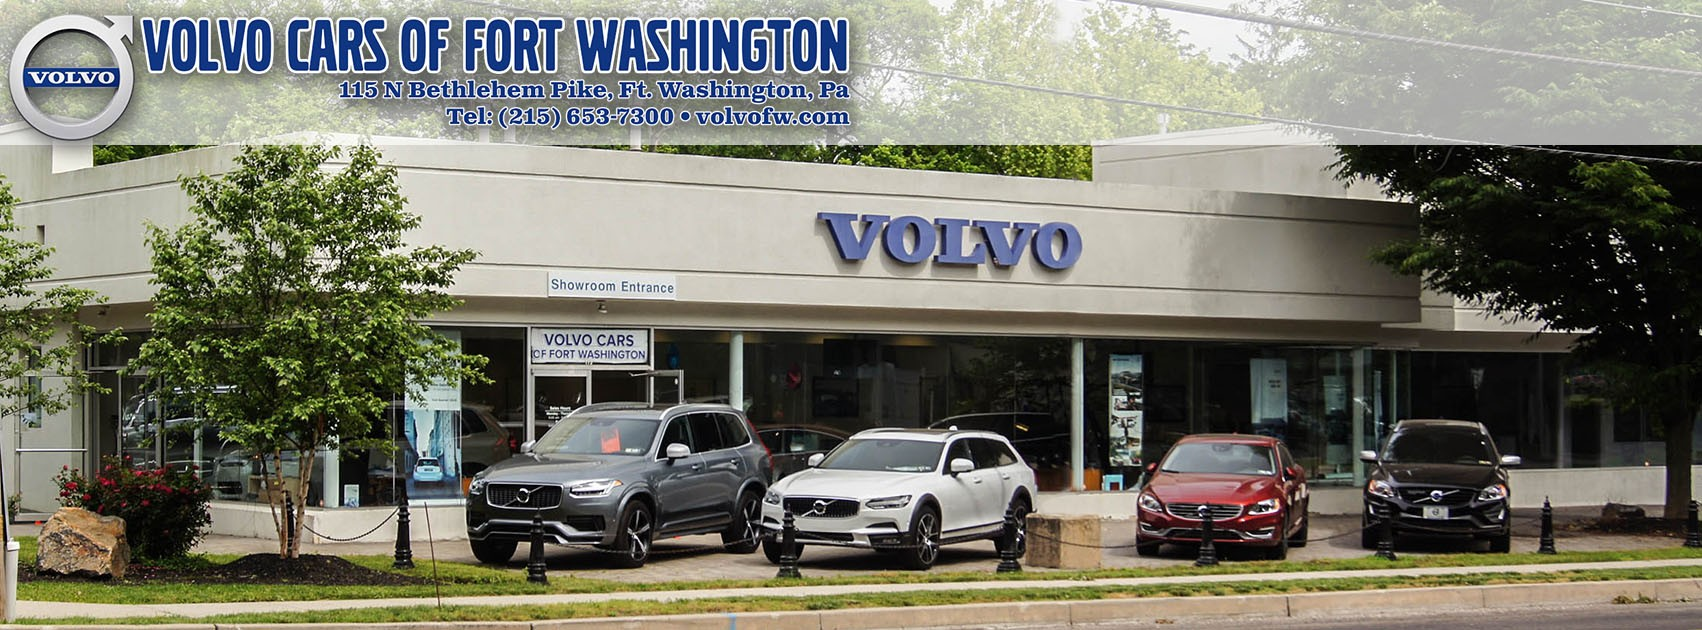 Washington Pa Car Dealerships >> Volvo Cars Of Fort Washington Linkedin